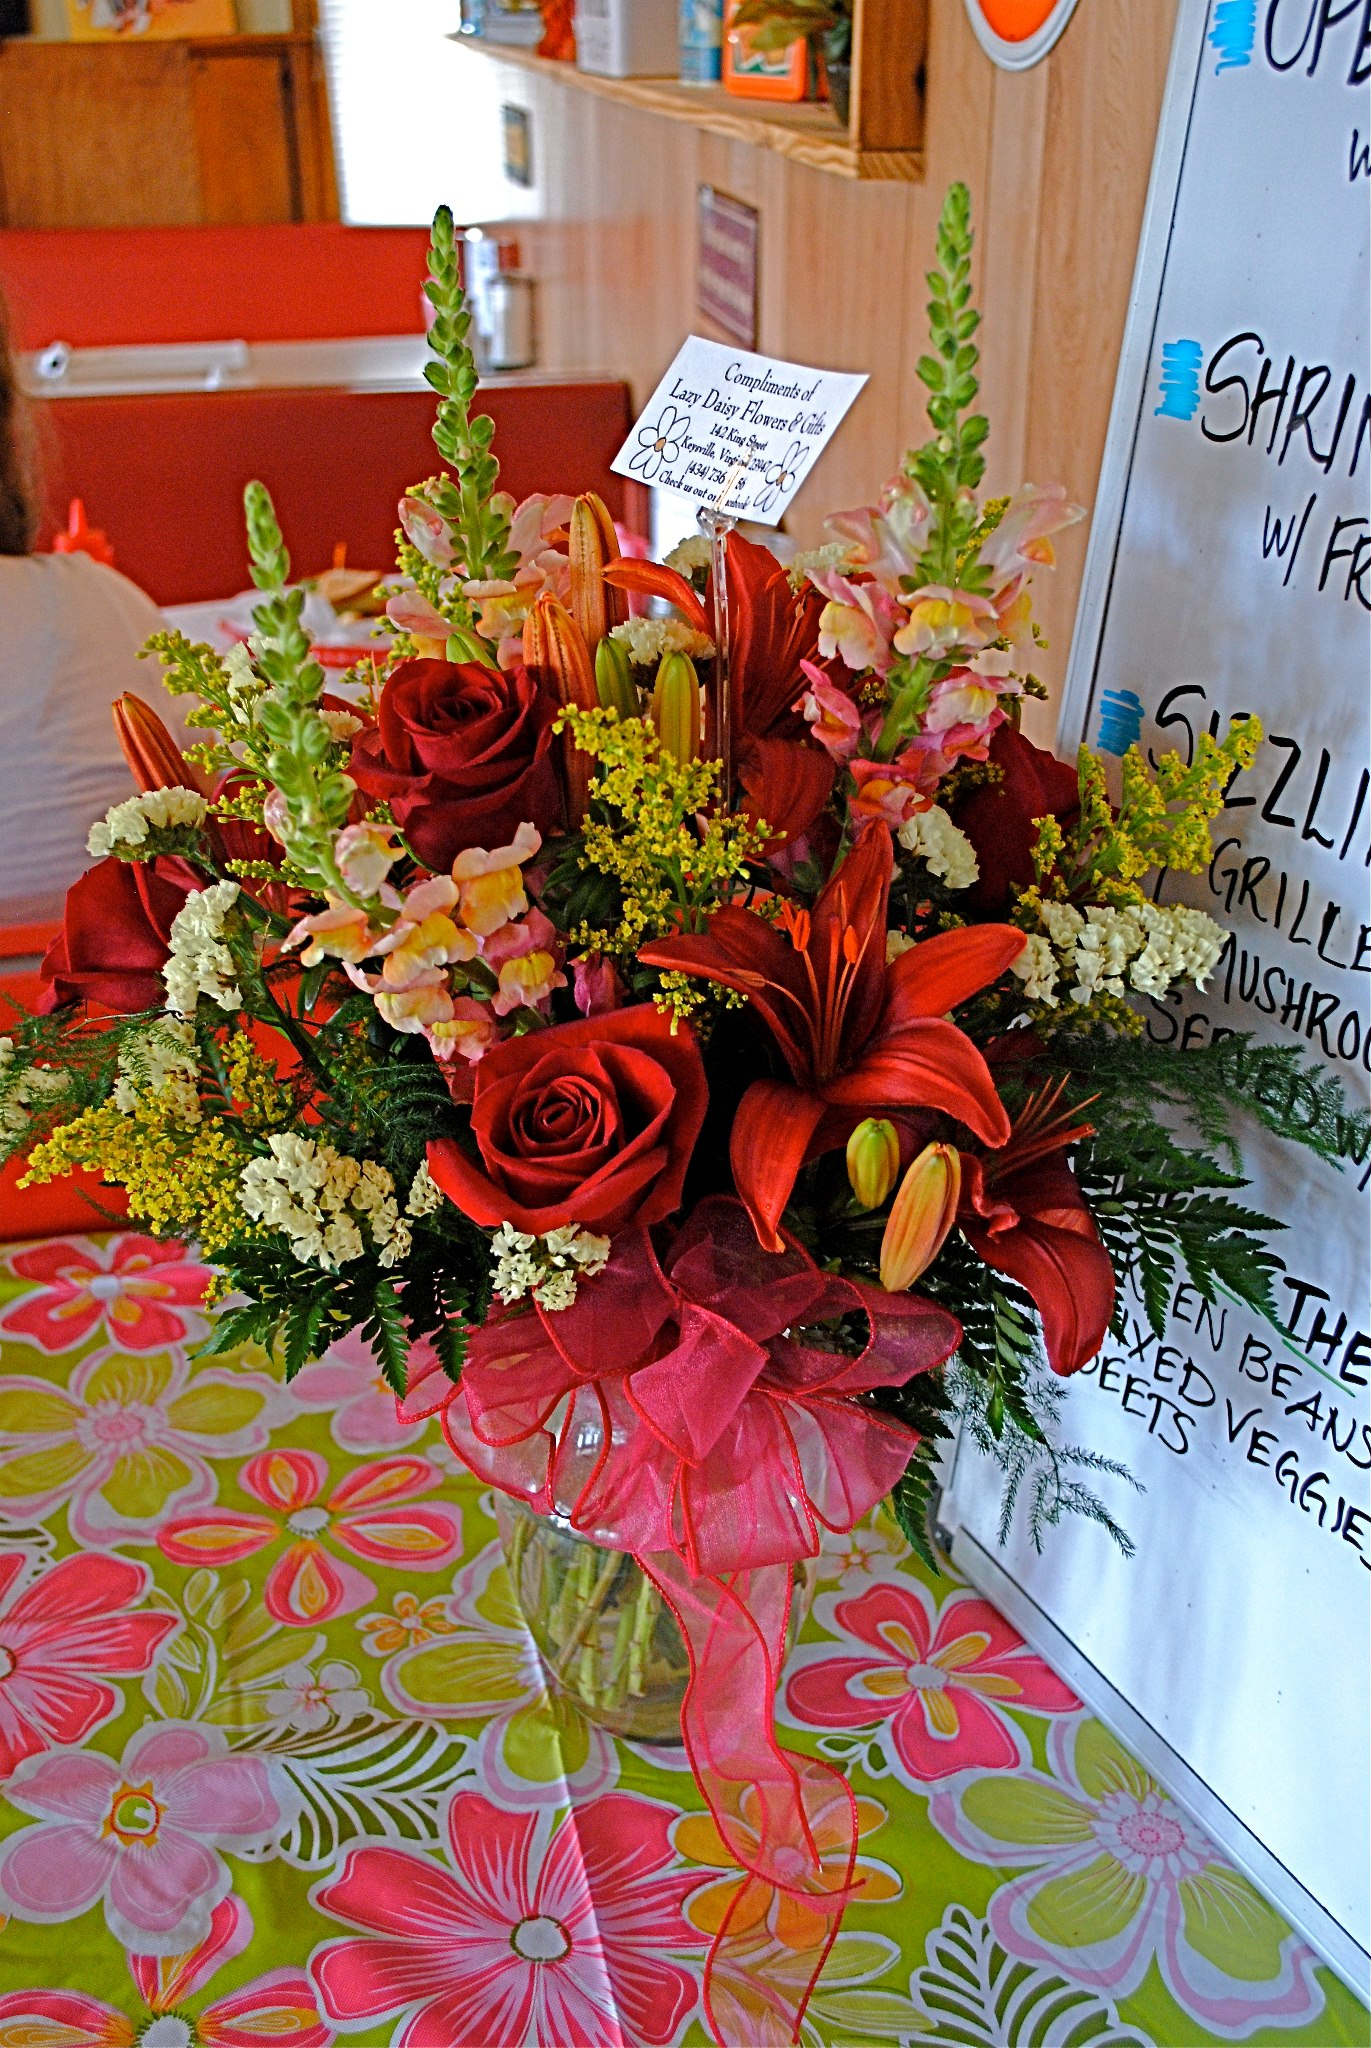 Arrangement for the Cruis-In Cafe Grand Opening